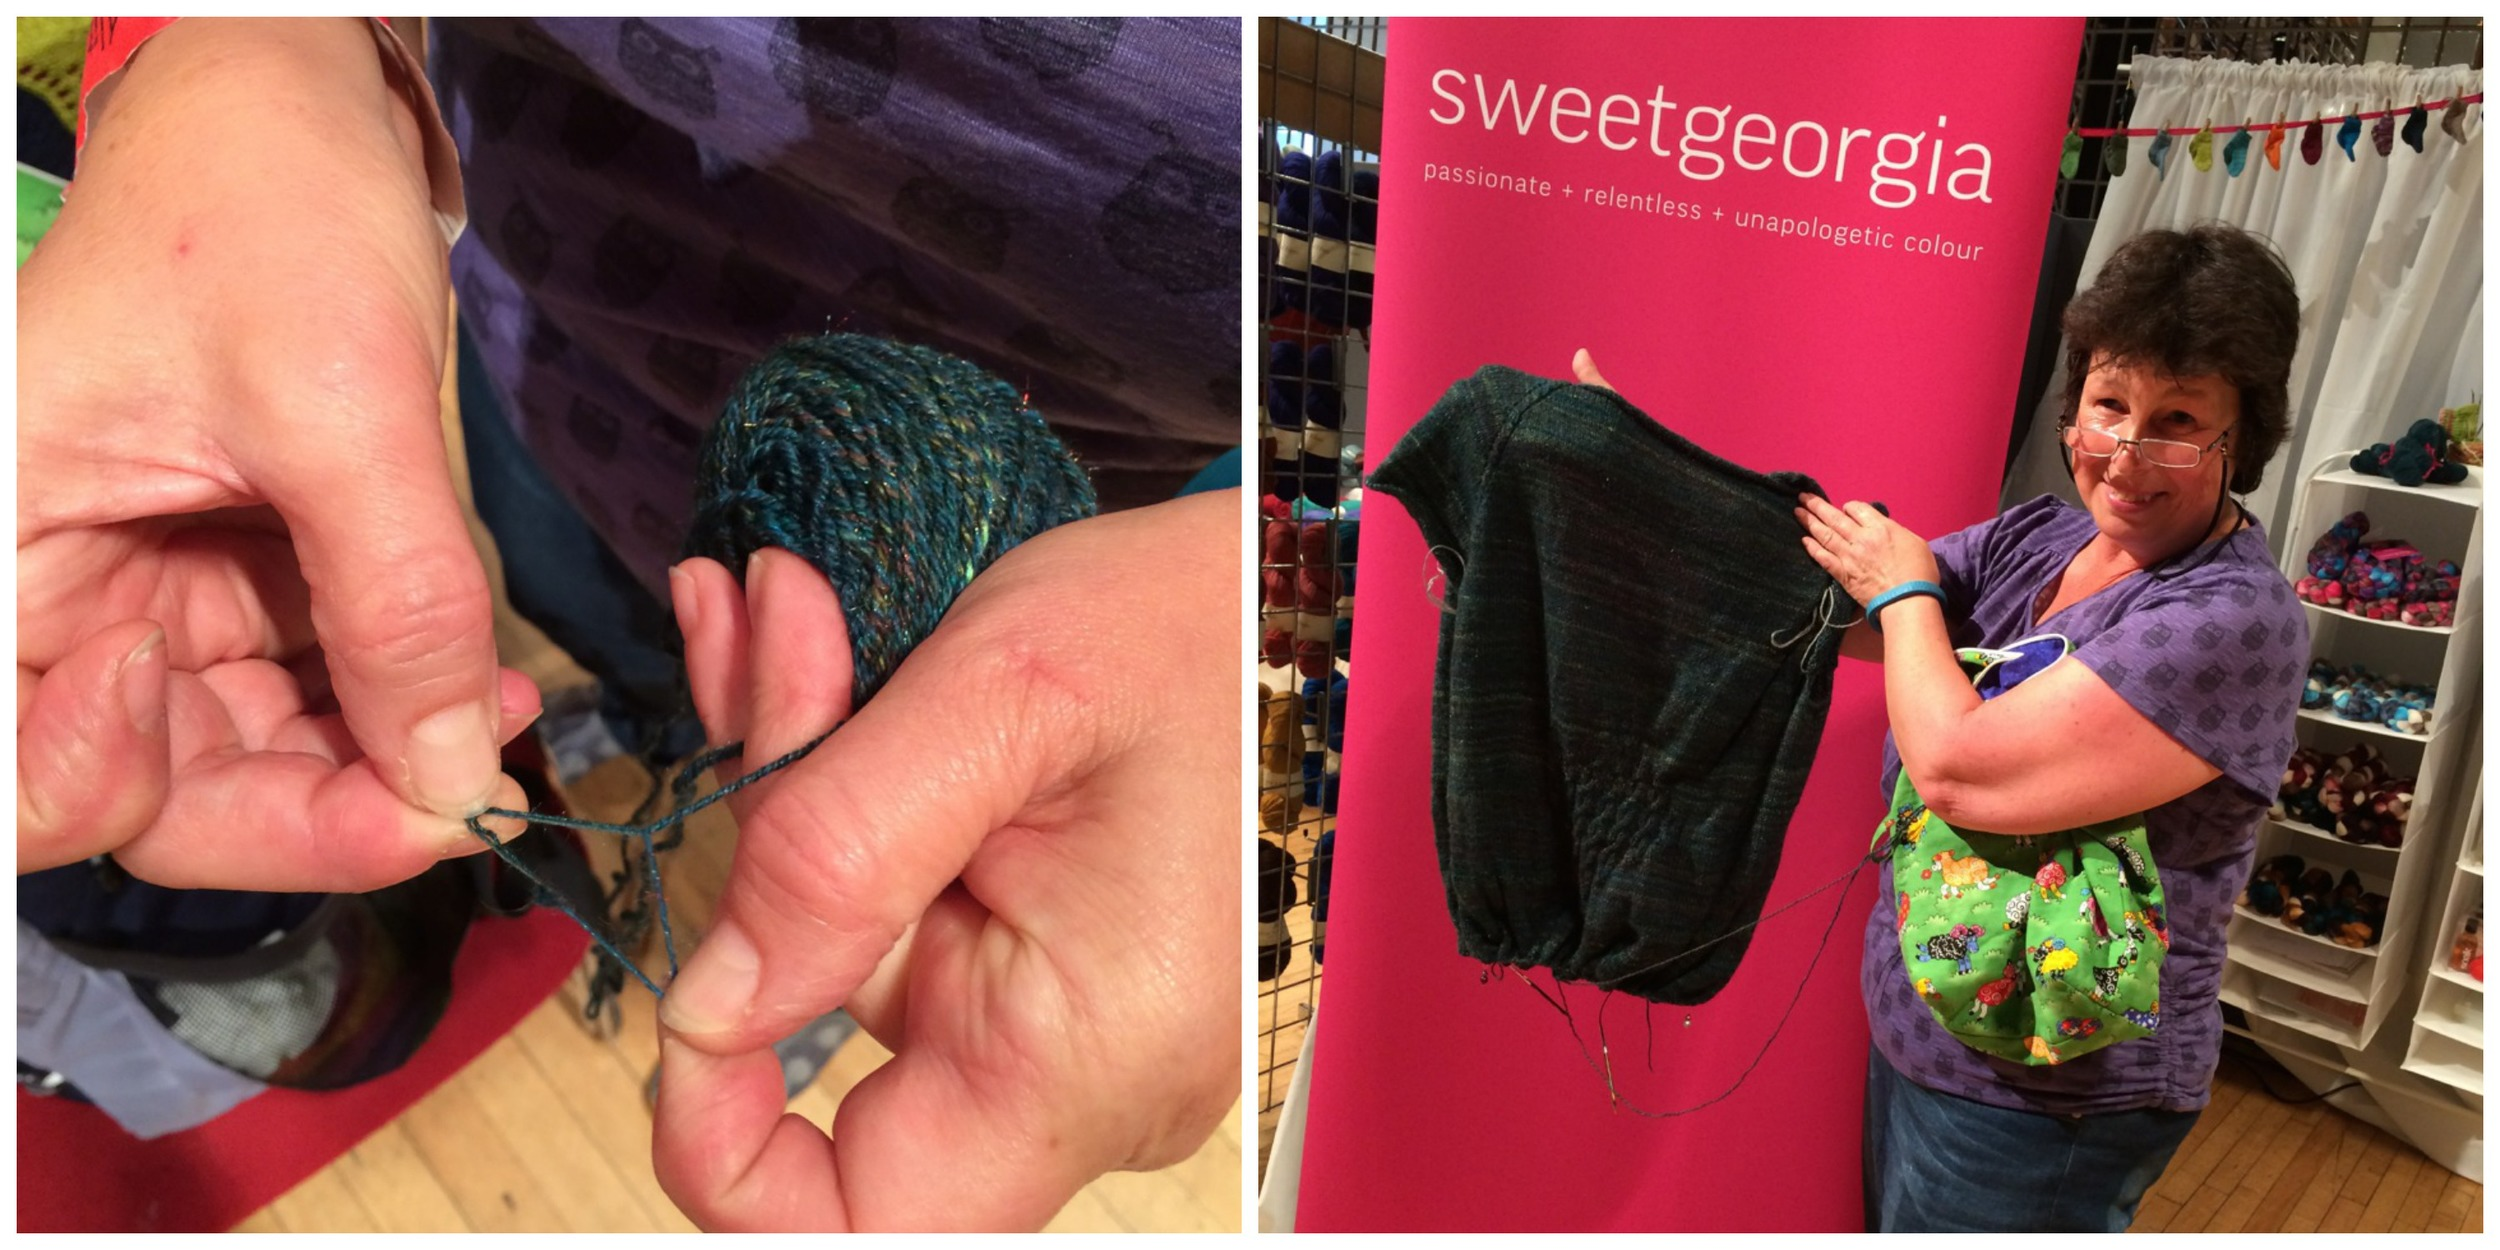 This wonderful knitter had bought some SweetGeorgia fibre at Unravel, spun it and then plied it with another bit of handspun before knitting it up in her own design.